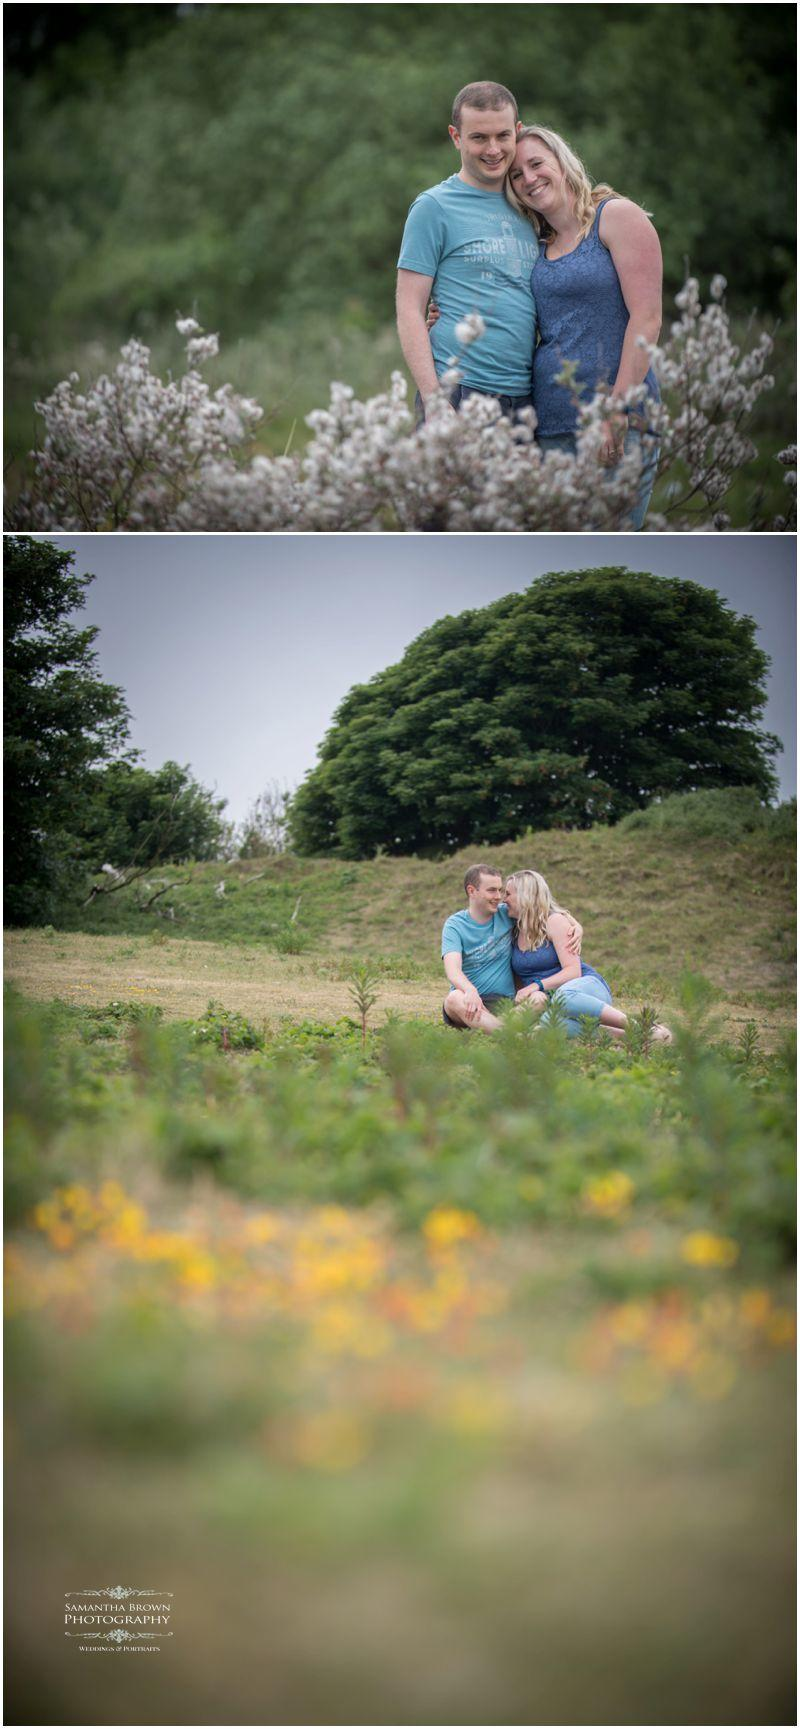 Claire and Andy's pre wedding shoot